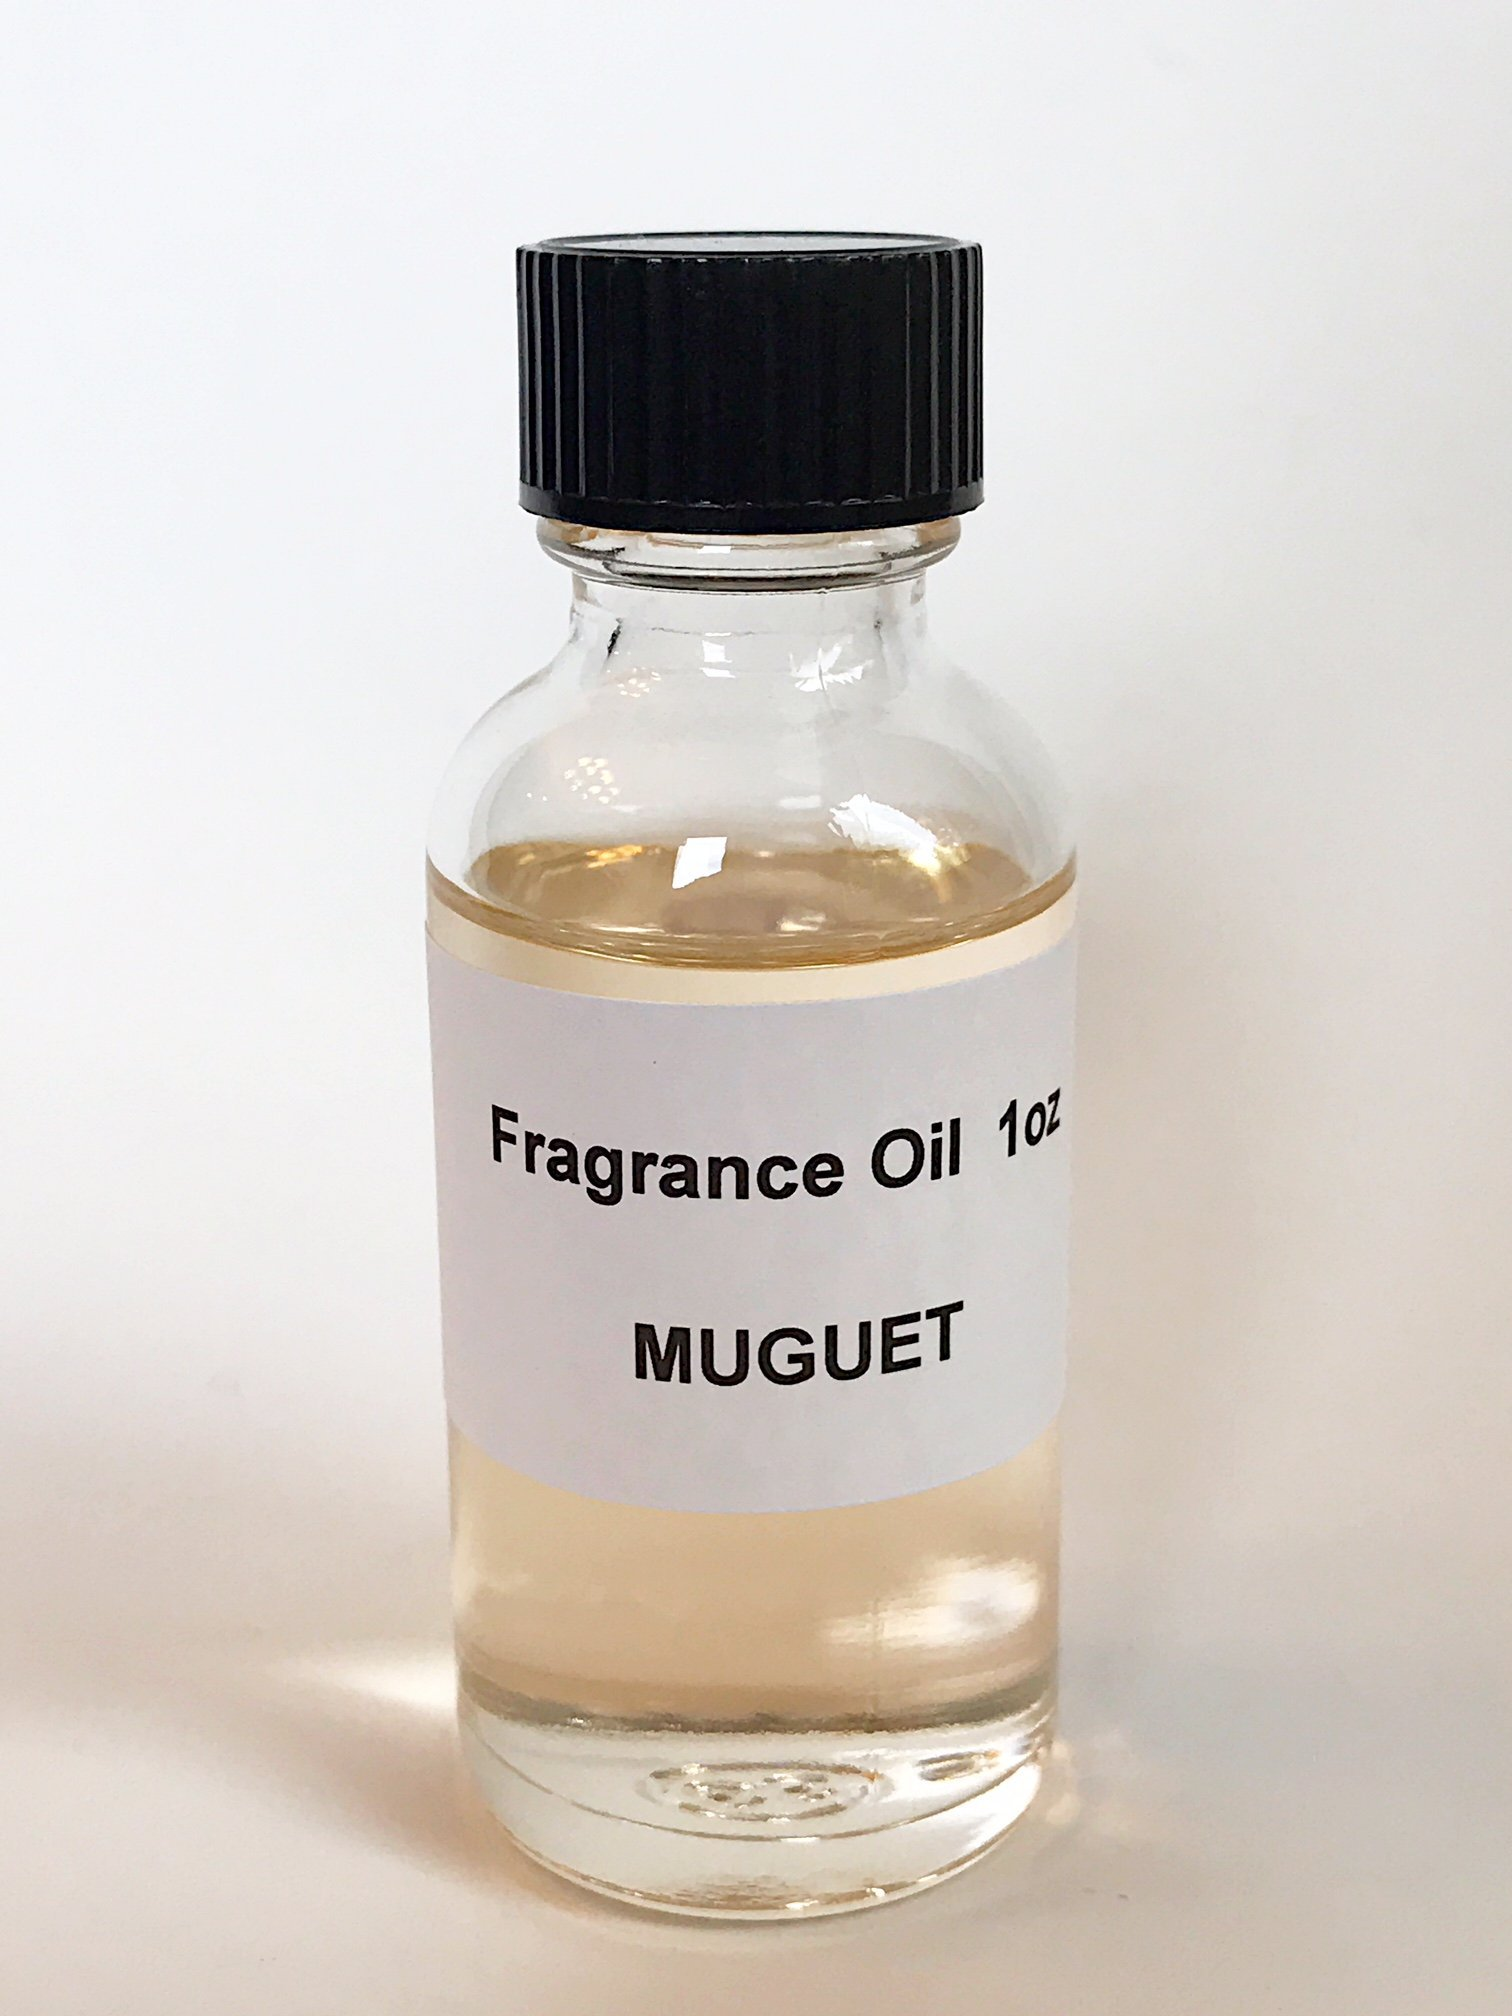 Muguet Fragrance Oil 1oz Body Oil Perfume Oil Made in USA